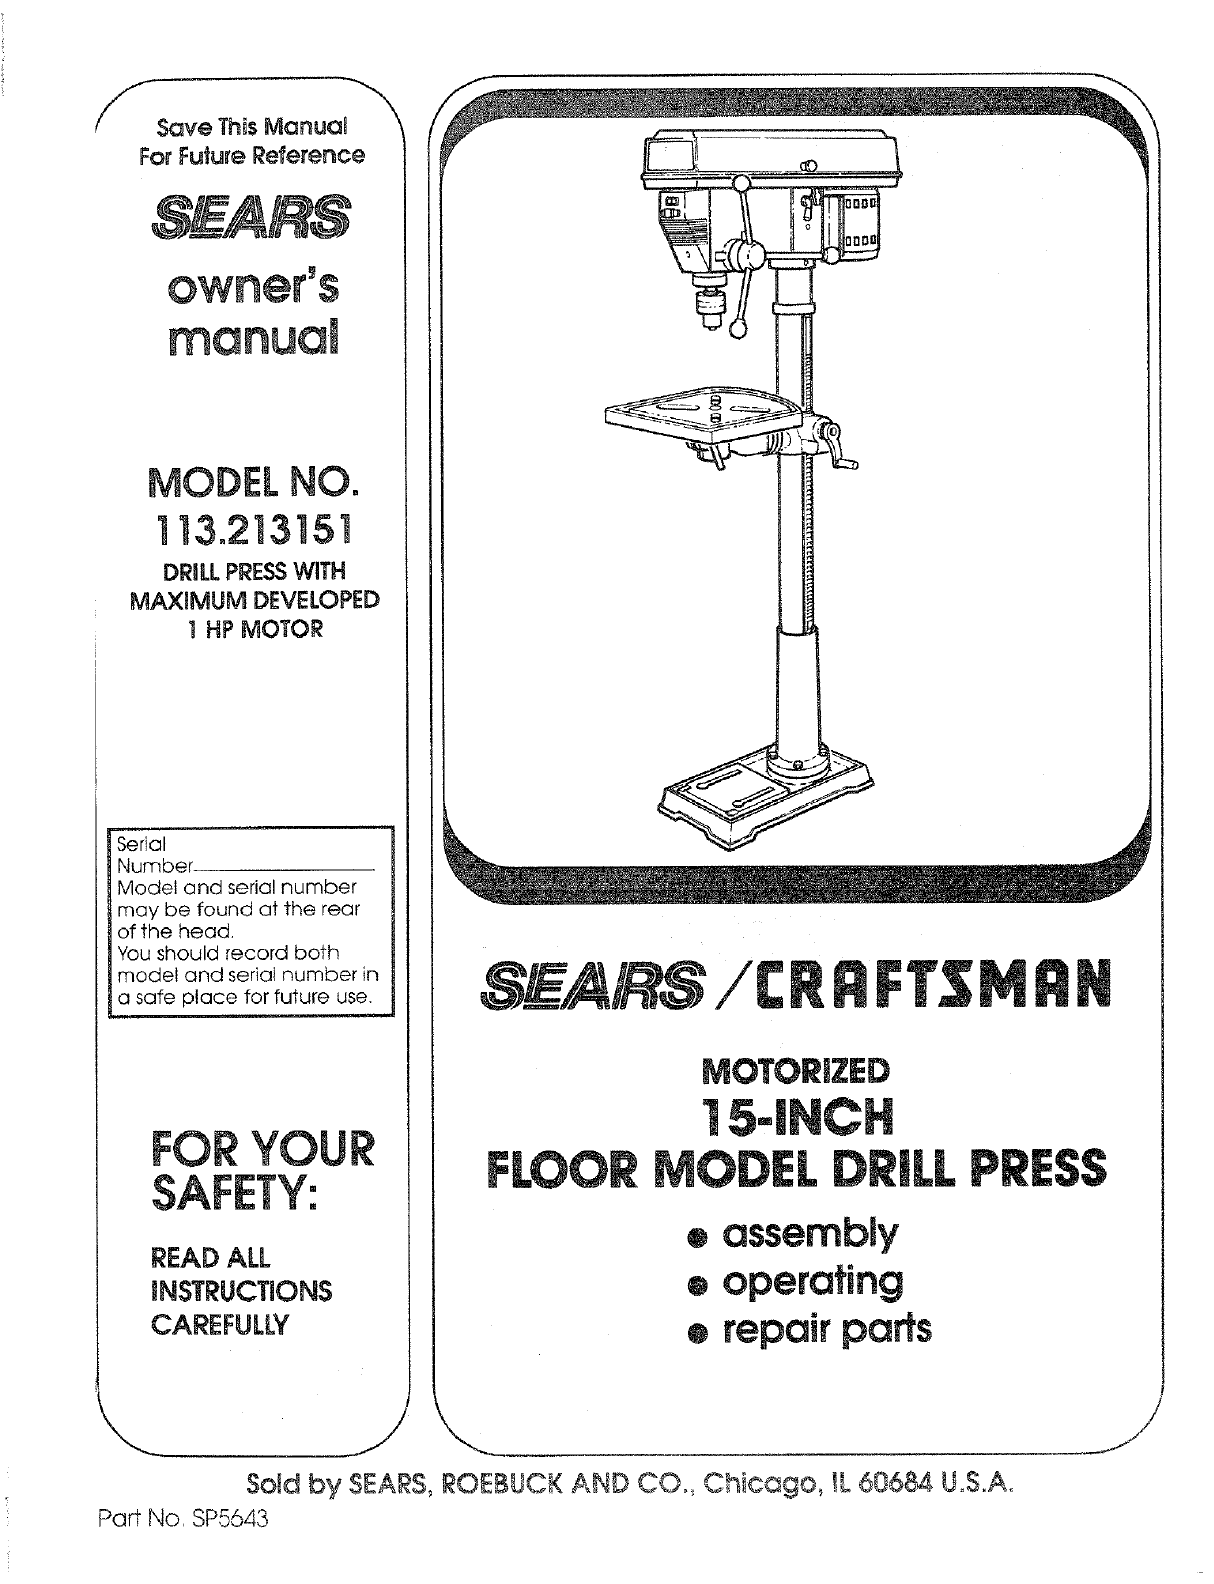 hight resolution of craftsman 113213151 user manual 15 floor drill press manuals and guides l0804024